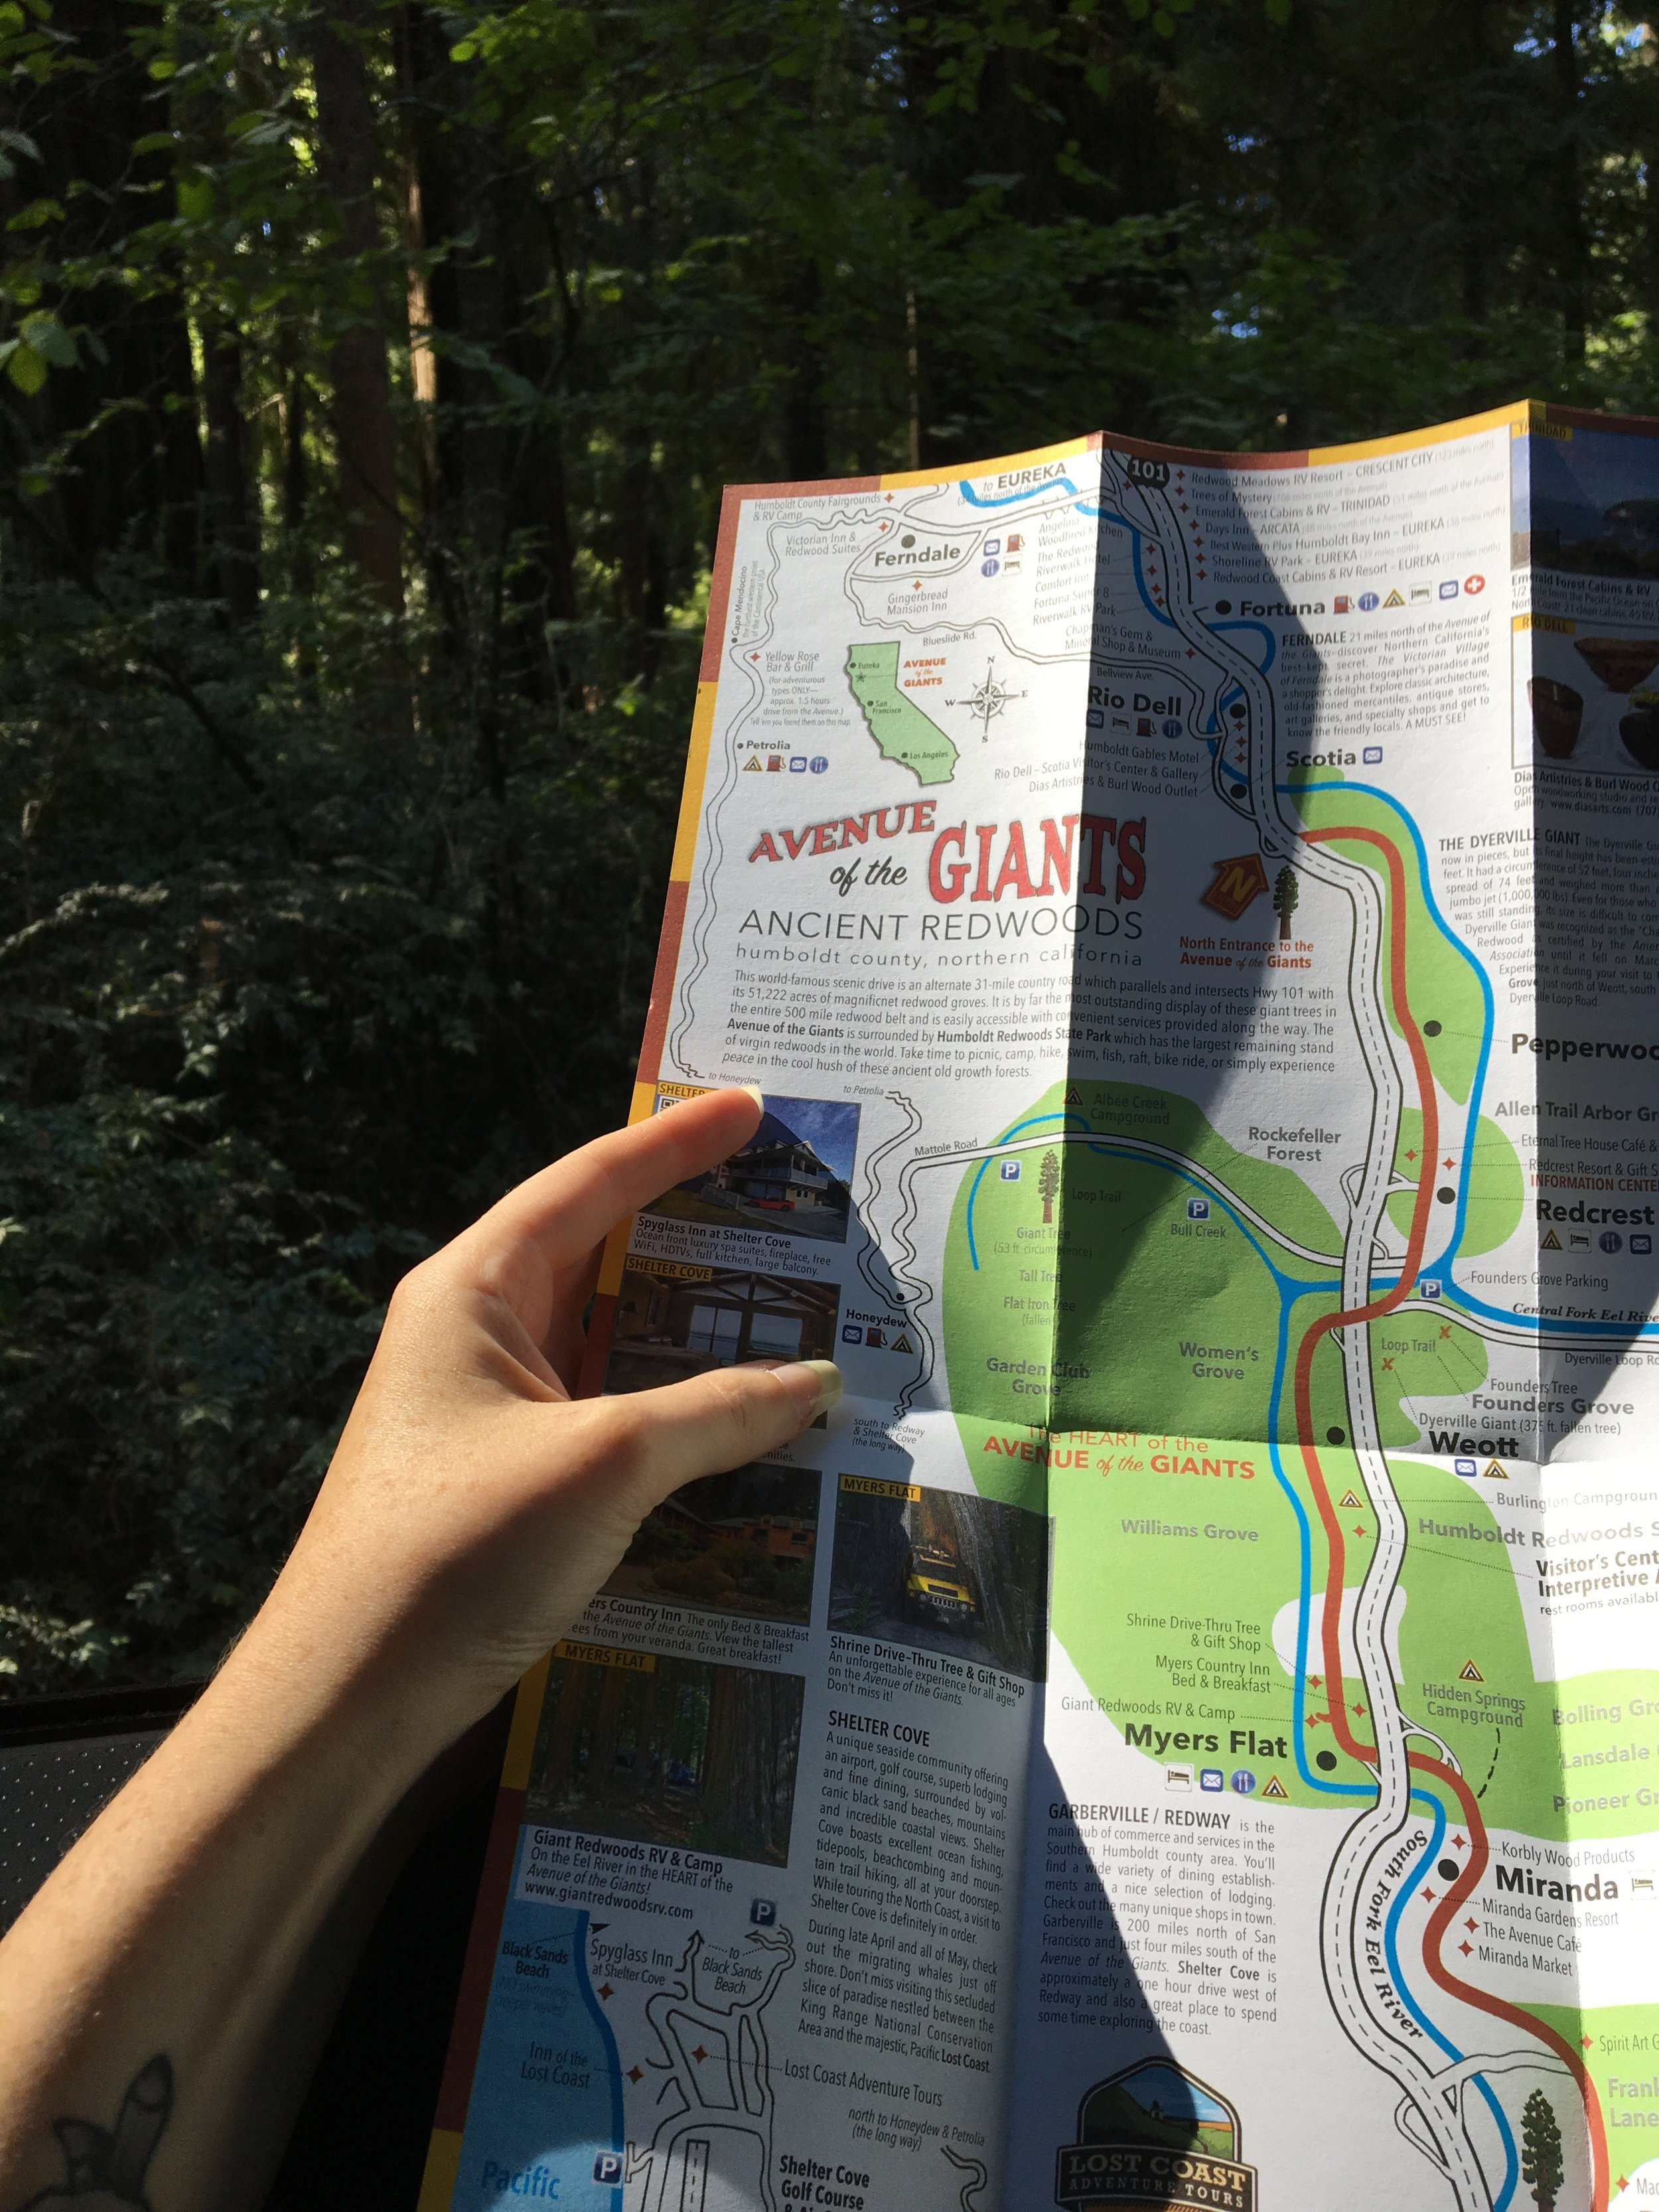 California Road Trip: Avenue of the Giants — The Detour Effect on